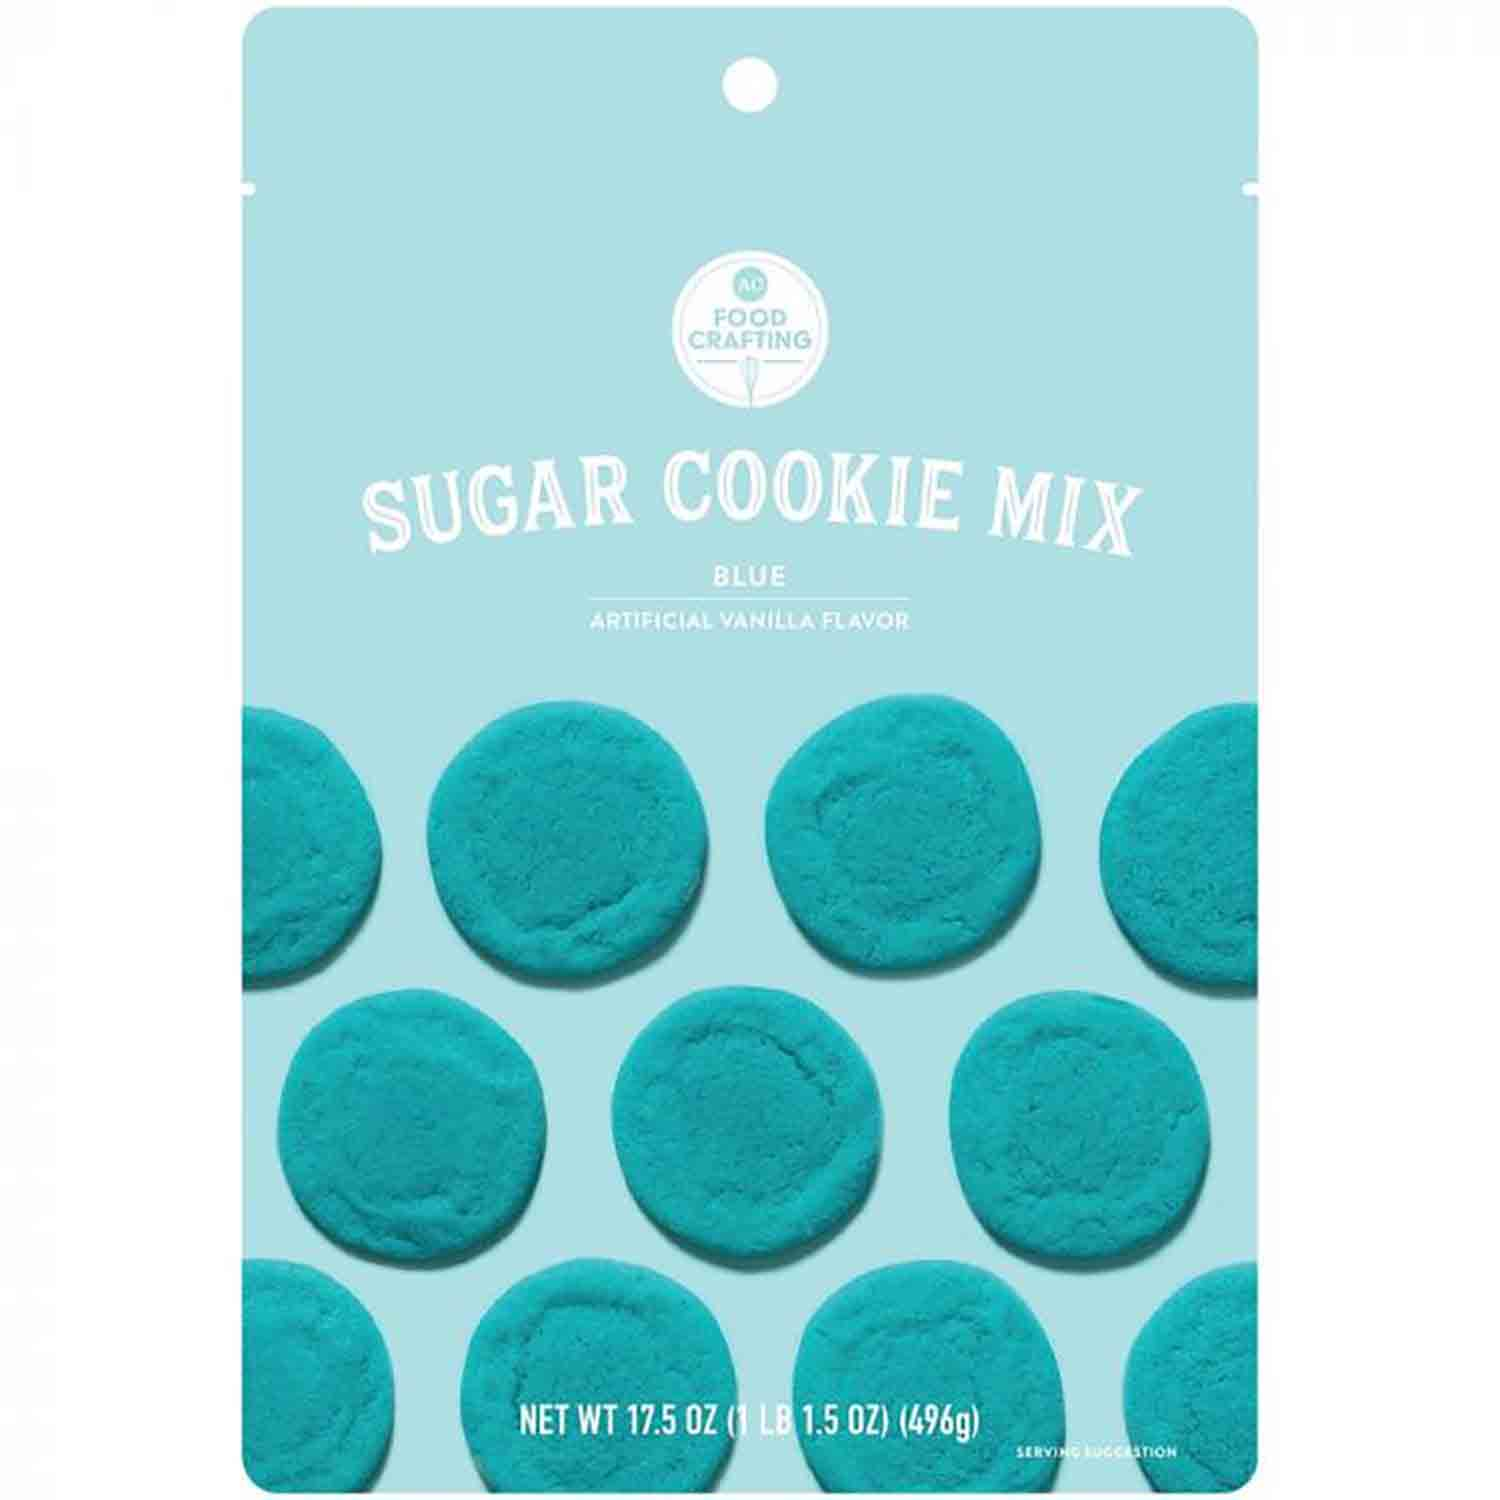 Blue Sugar Cookie Mix